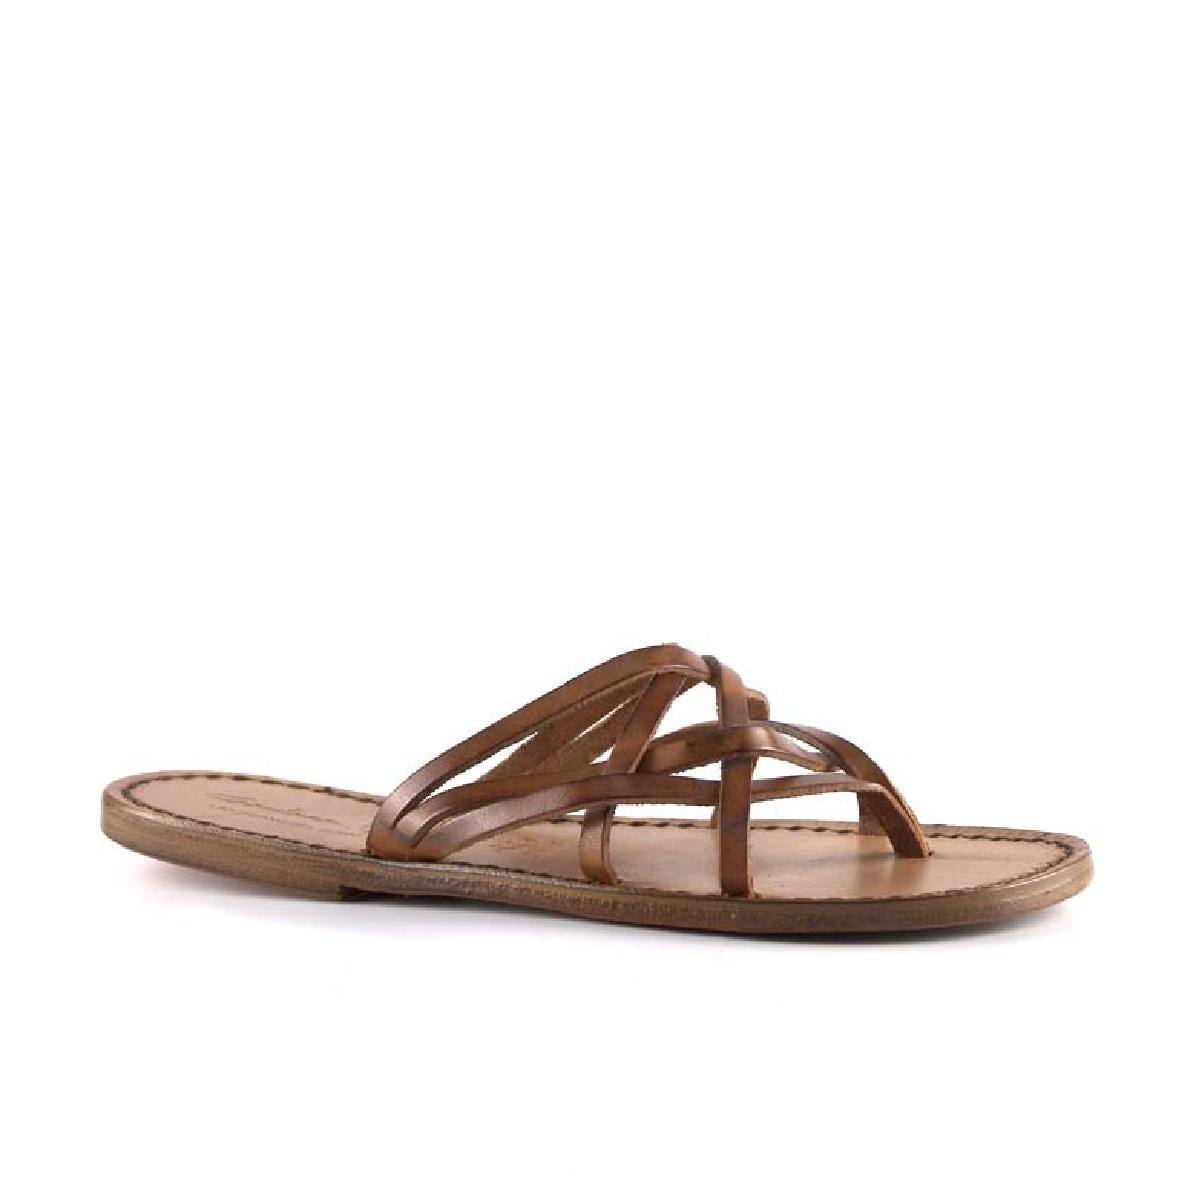 Original Dark Brown Greased Vachetta Leather Slides Sandals With Leather Sole